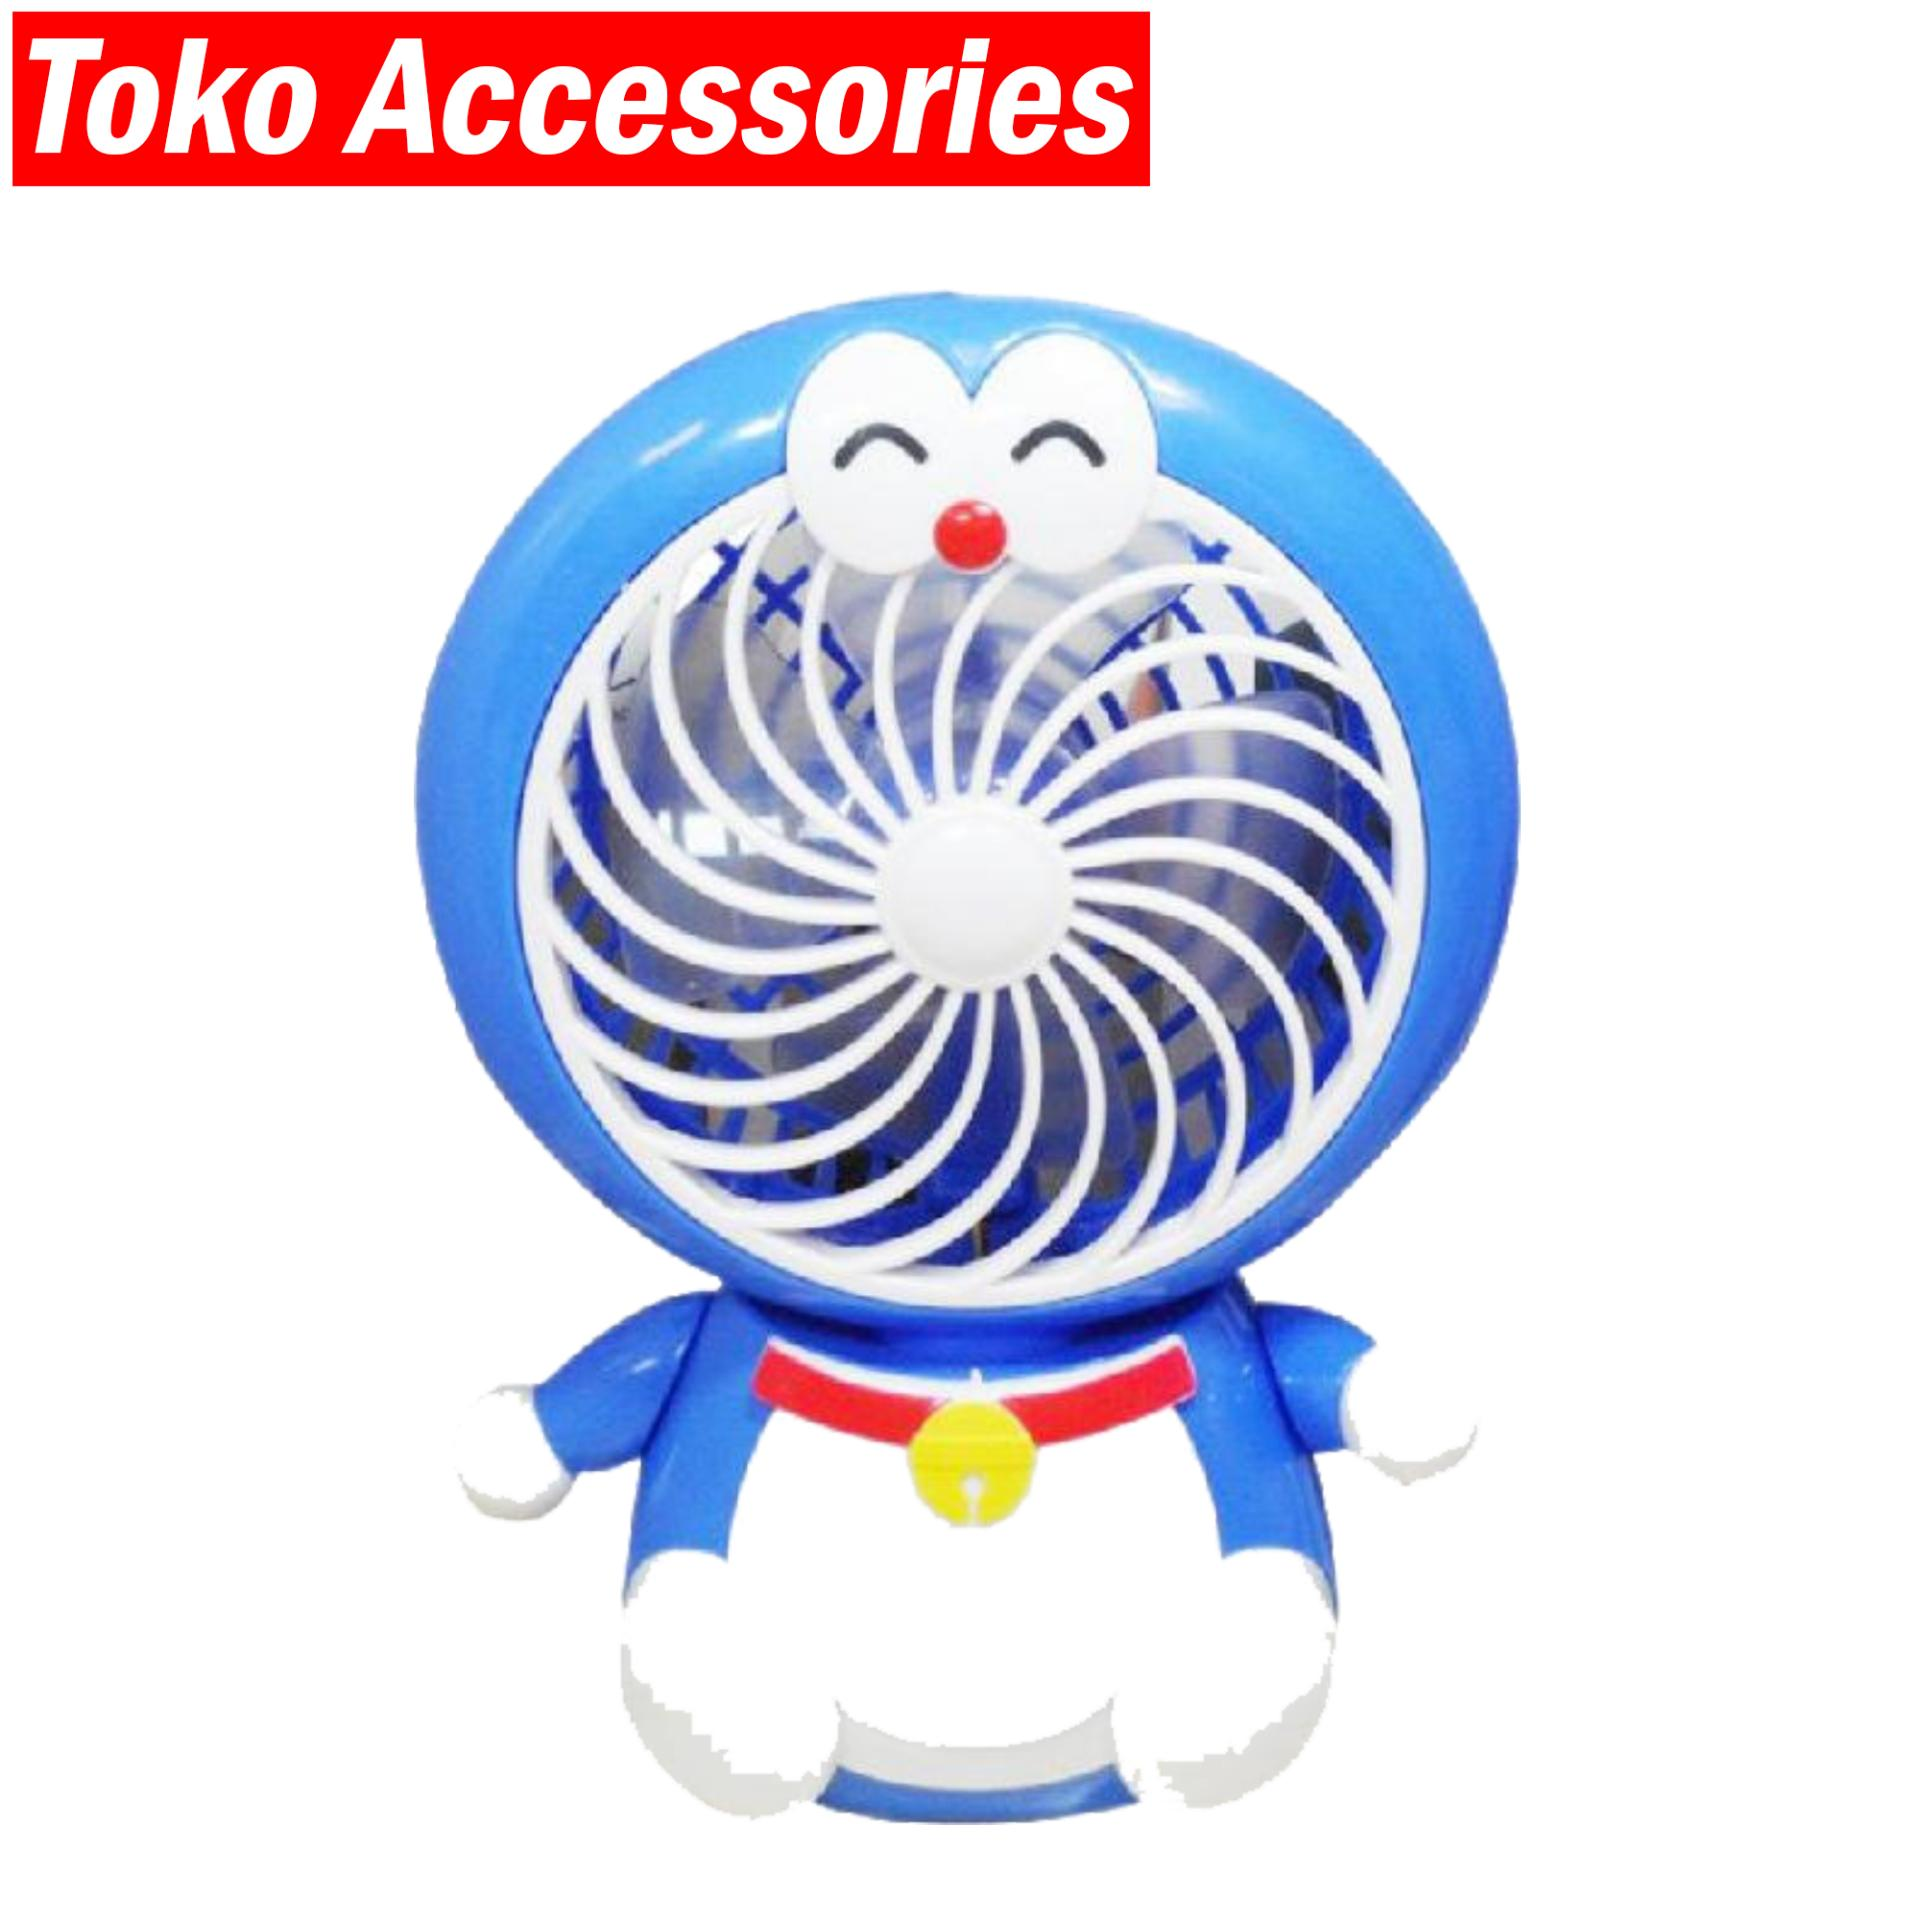 Kipas Mini Portable Doraemon 180 Degree Rotation Head Premium Quality By Toko Accessories.